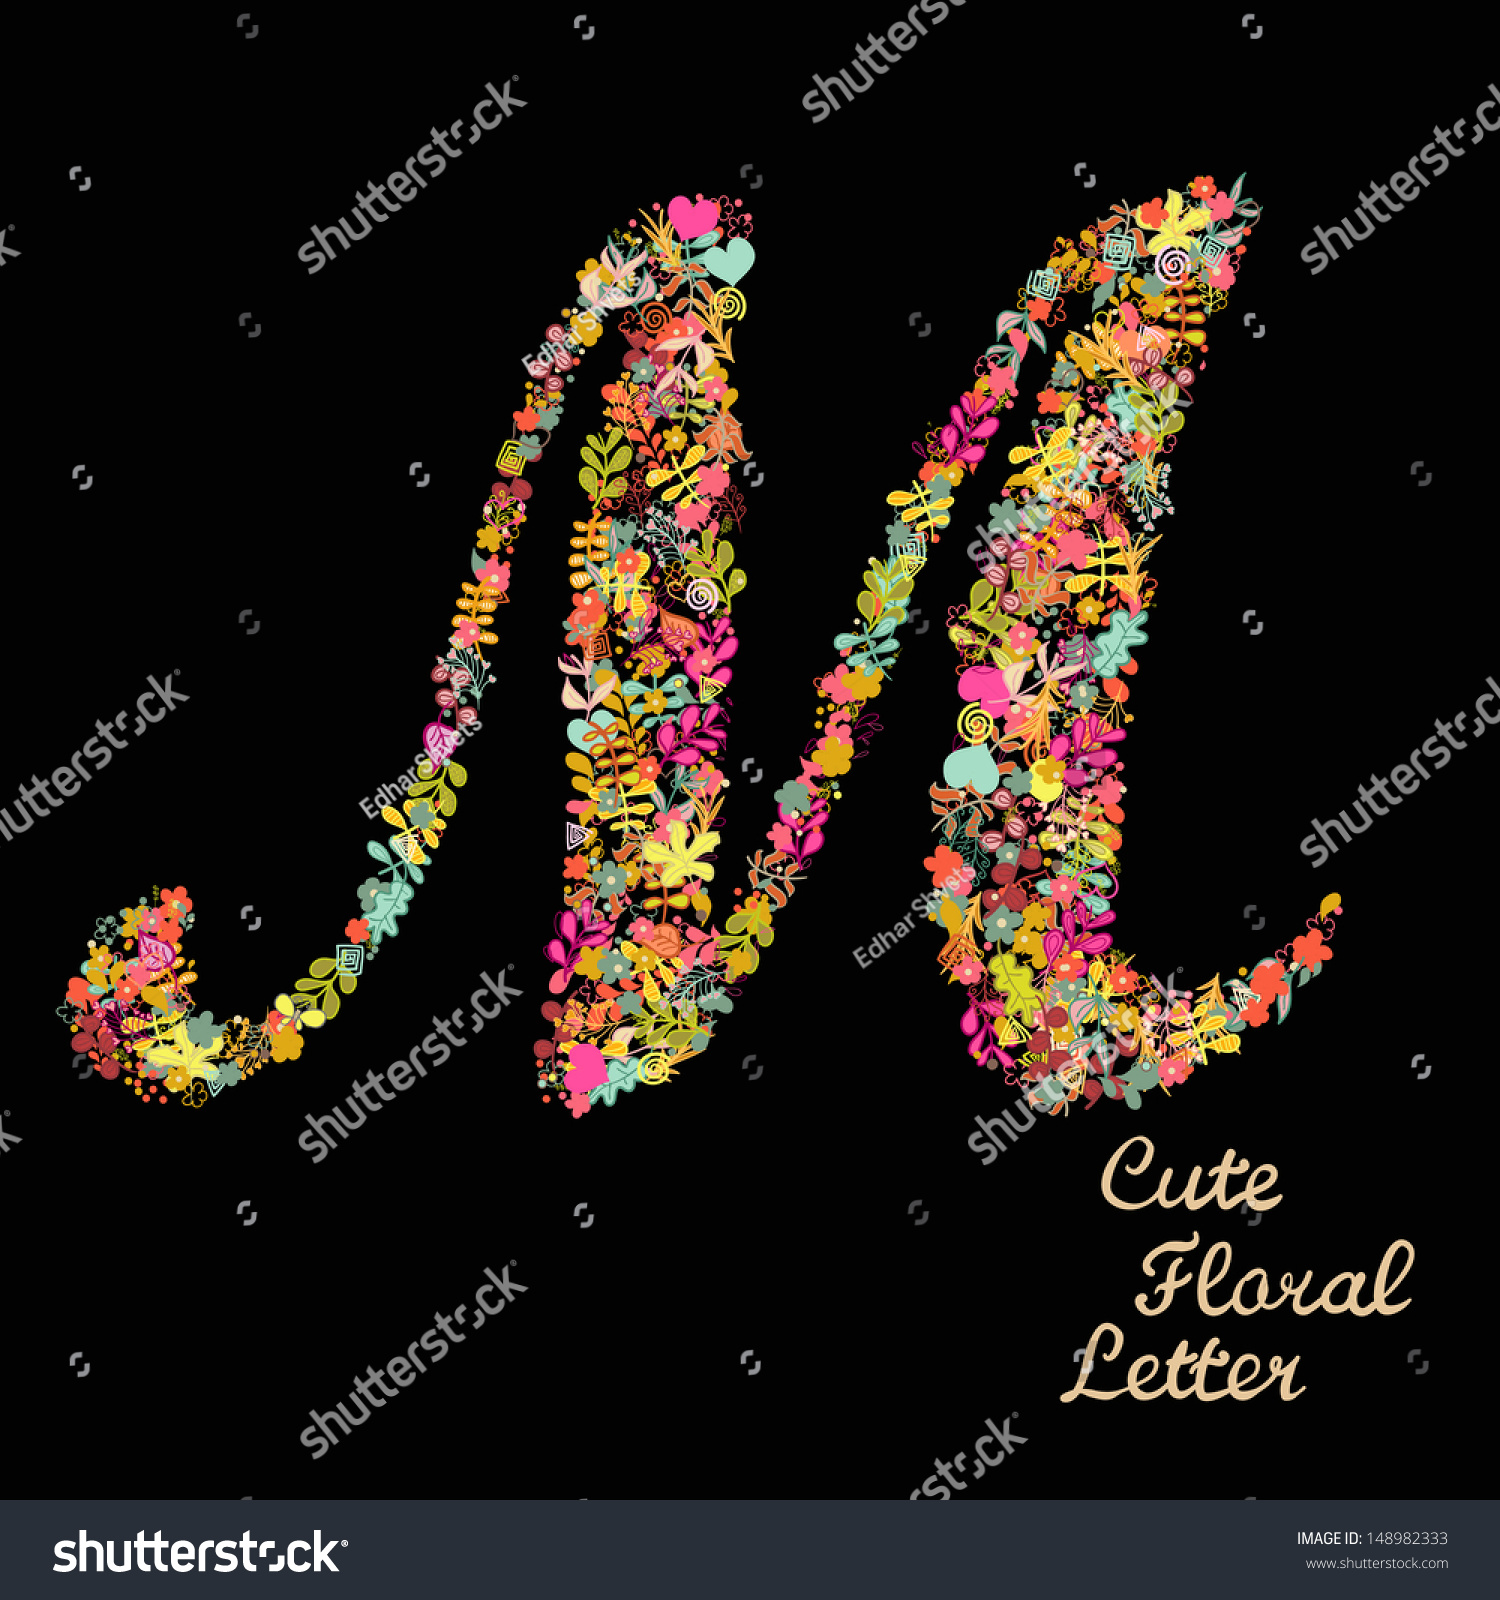 royalty-free the letter m. bright floral element of… #148982333